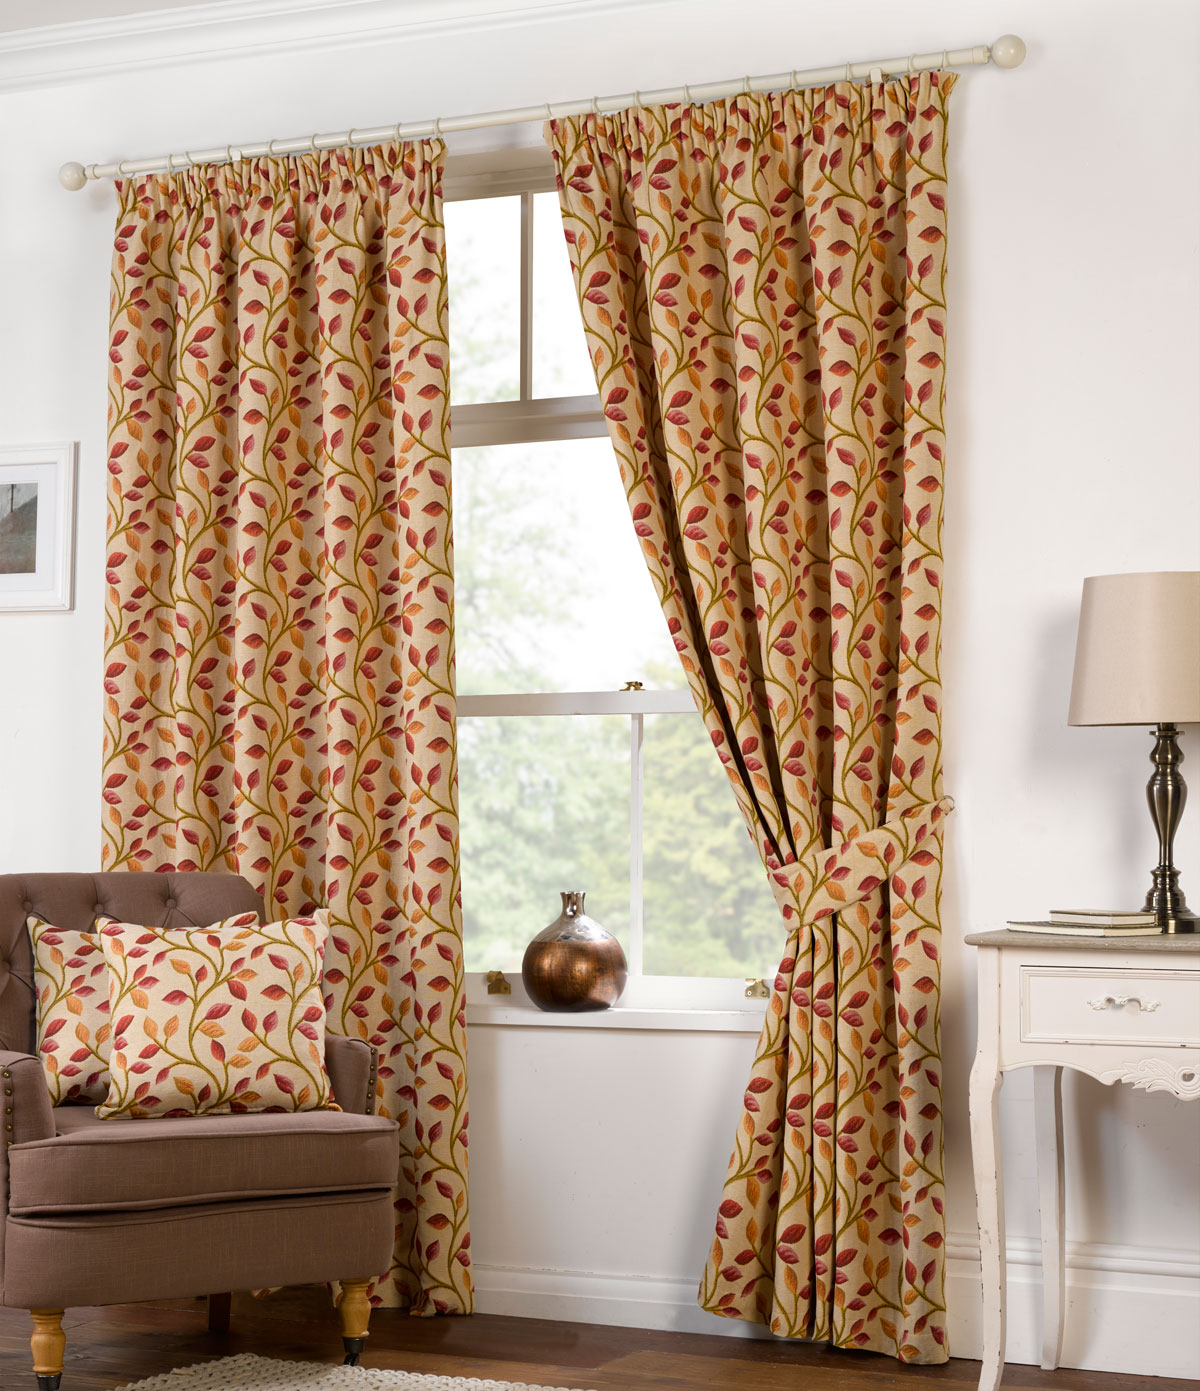 Chartwell Vines Tapestry Ready Made Lined Curtains - Chartwell Vines Tapestry Curtains Free UK Delivery Terrys Fabrics